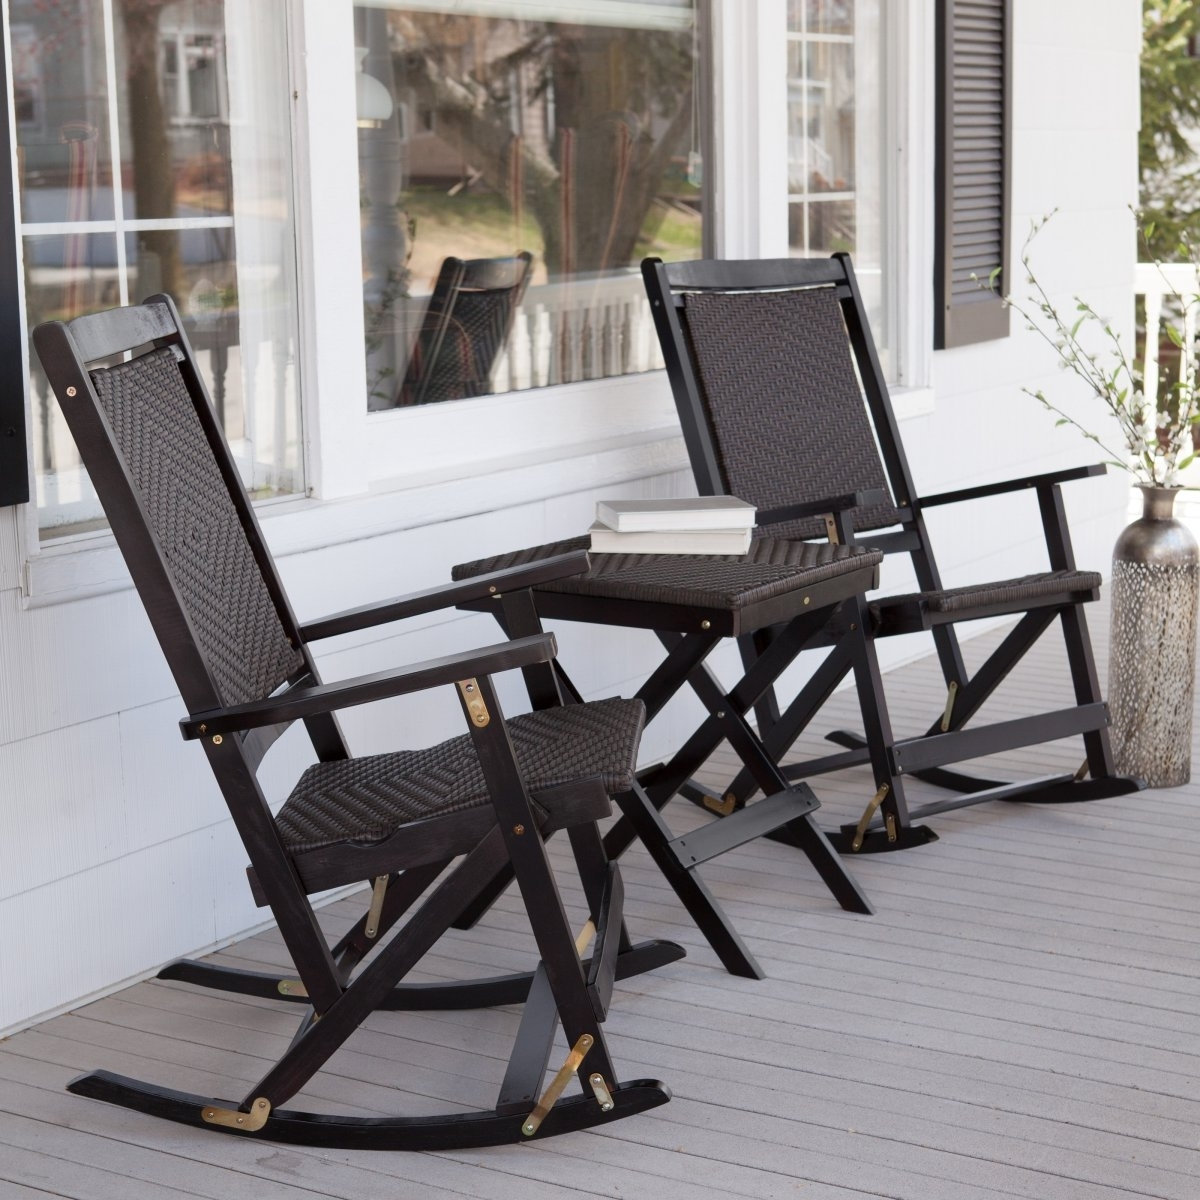 Outdoor Fascinating Rocking Chairs For Front Porch Outdoors White Throughout Trendy Outdoor Patio Rocking Chairs (View 9 of 20)